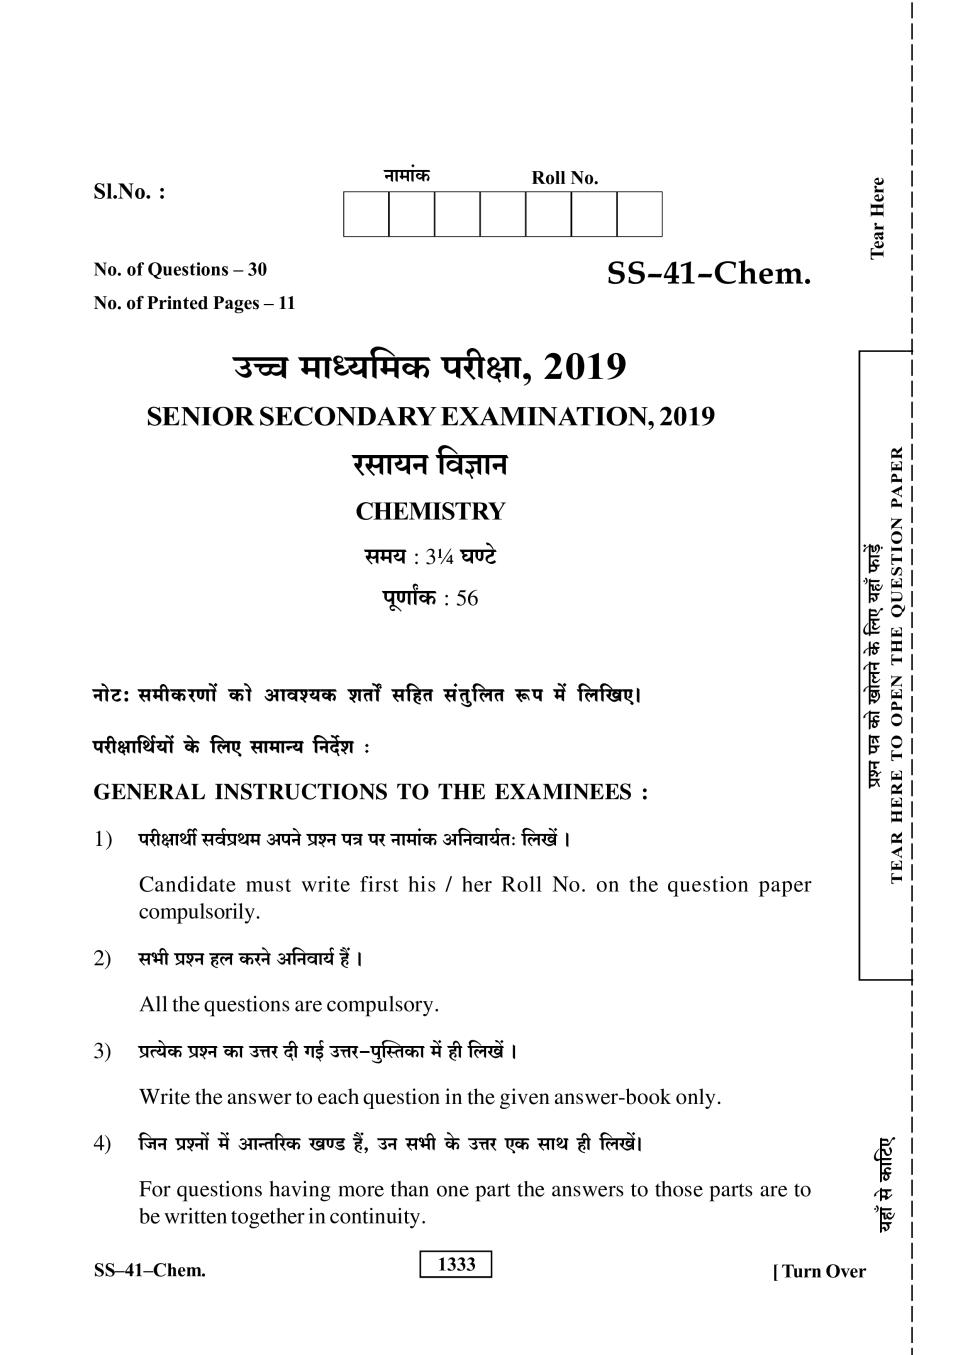 Rajasthan Board Sr. Secondary Chemistry Question Paper